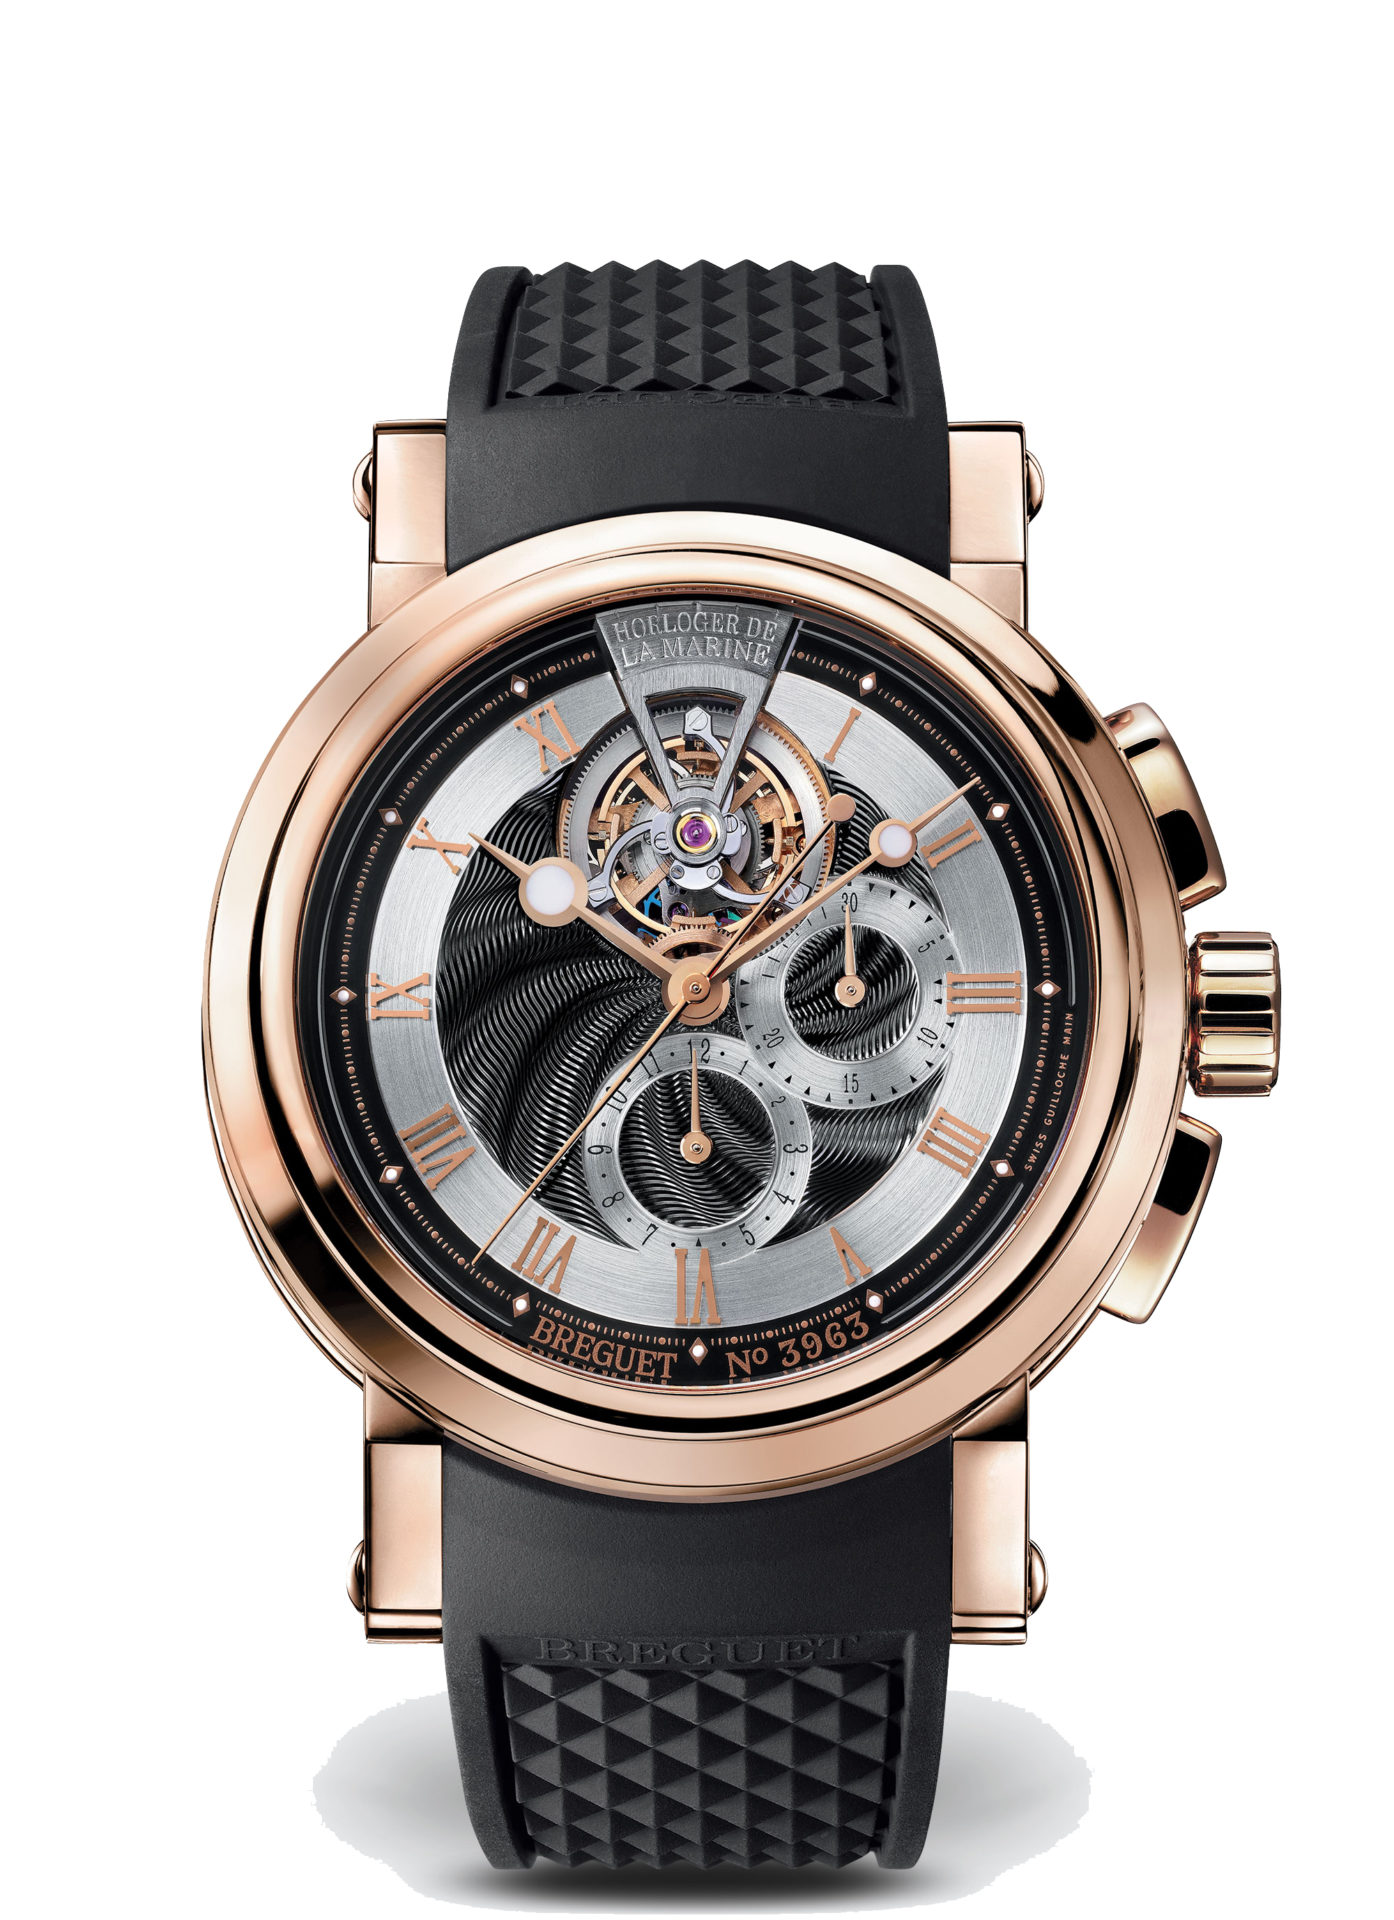 Breguet-La-Marine-5837-Hall-of-Time-5837br-92-5zu